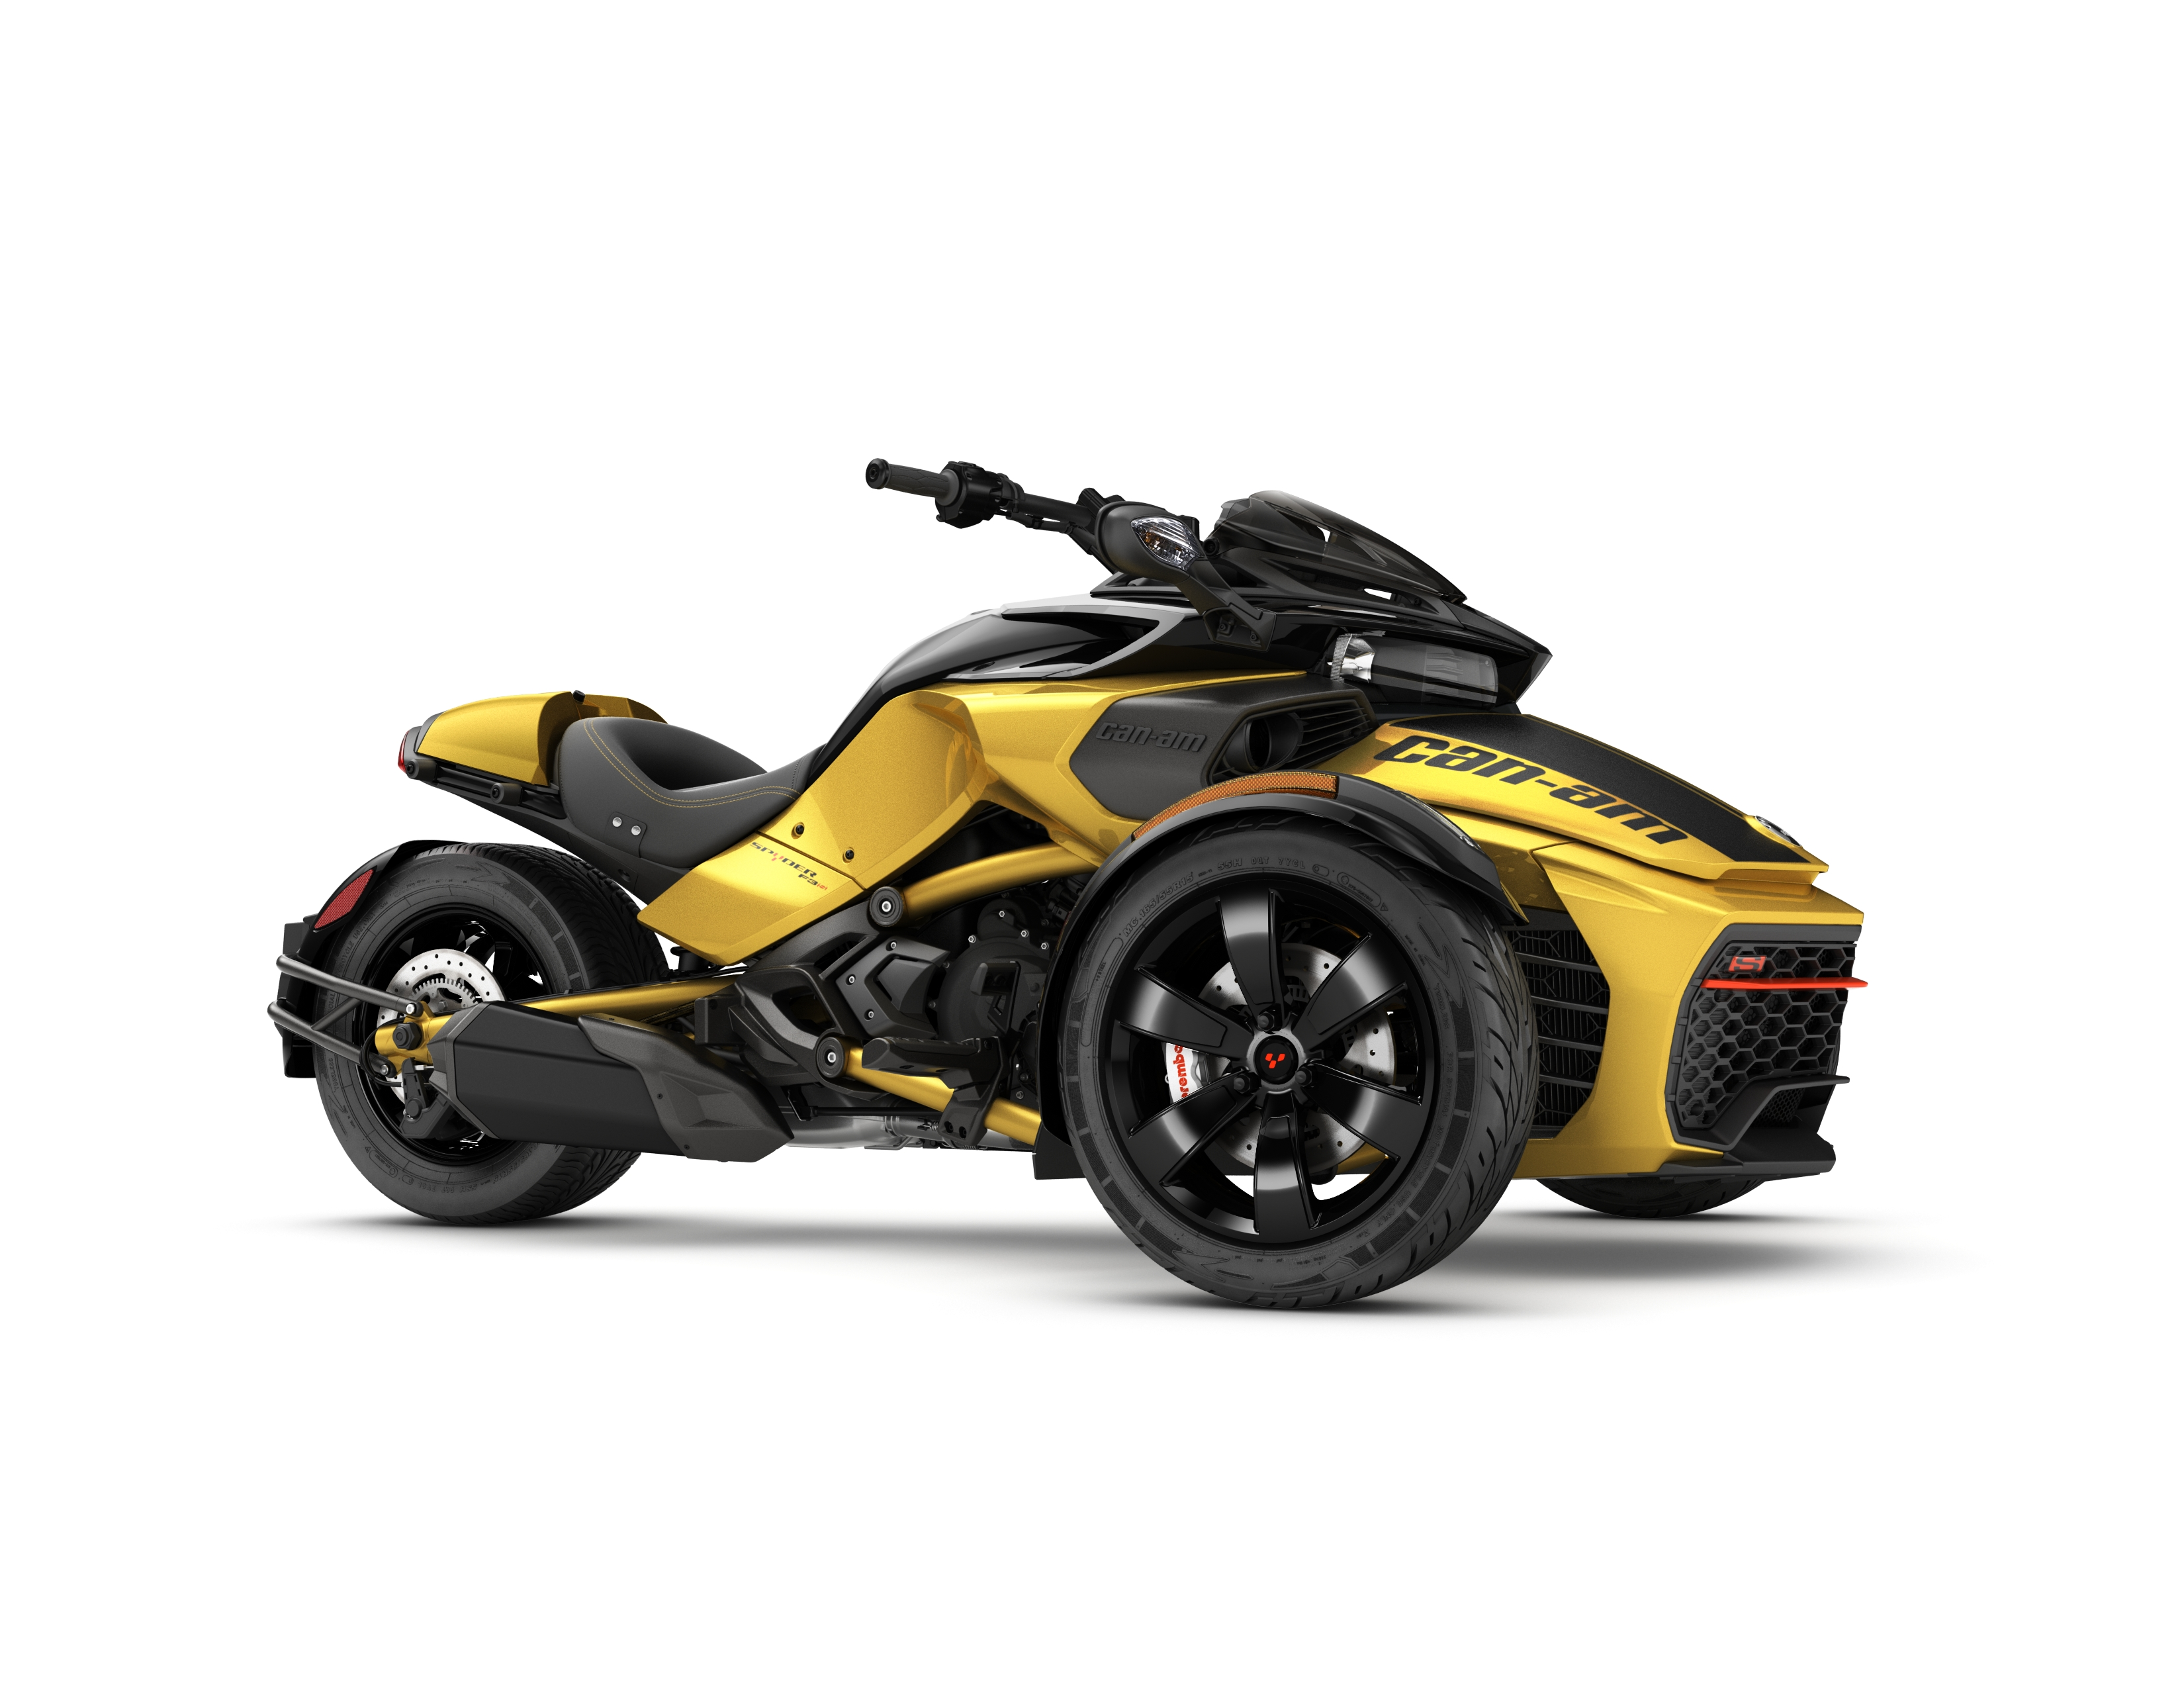 spyder f3 s daytona 500 se6 can am spyder f3 s daytona se6 rs racing concessionnaire can am. Black Bedroom Furniture Sets. Home Design Ideas